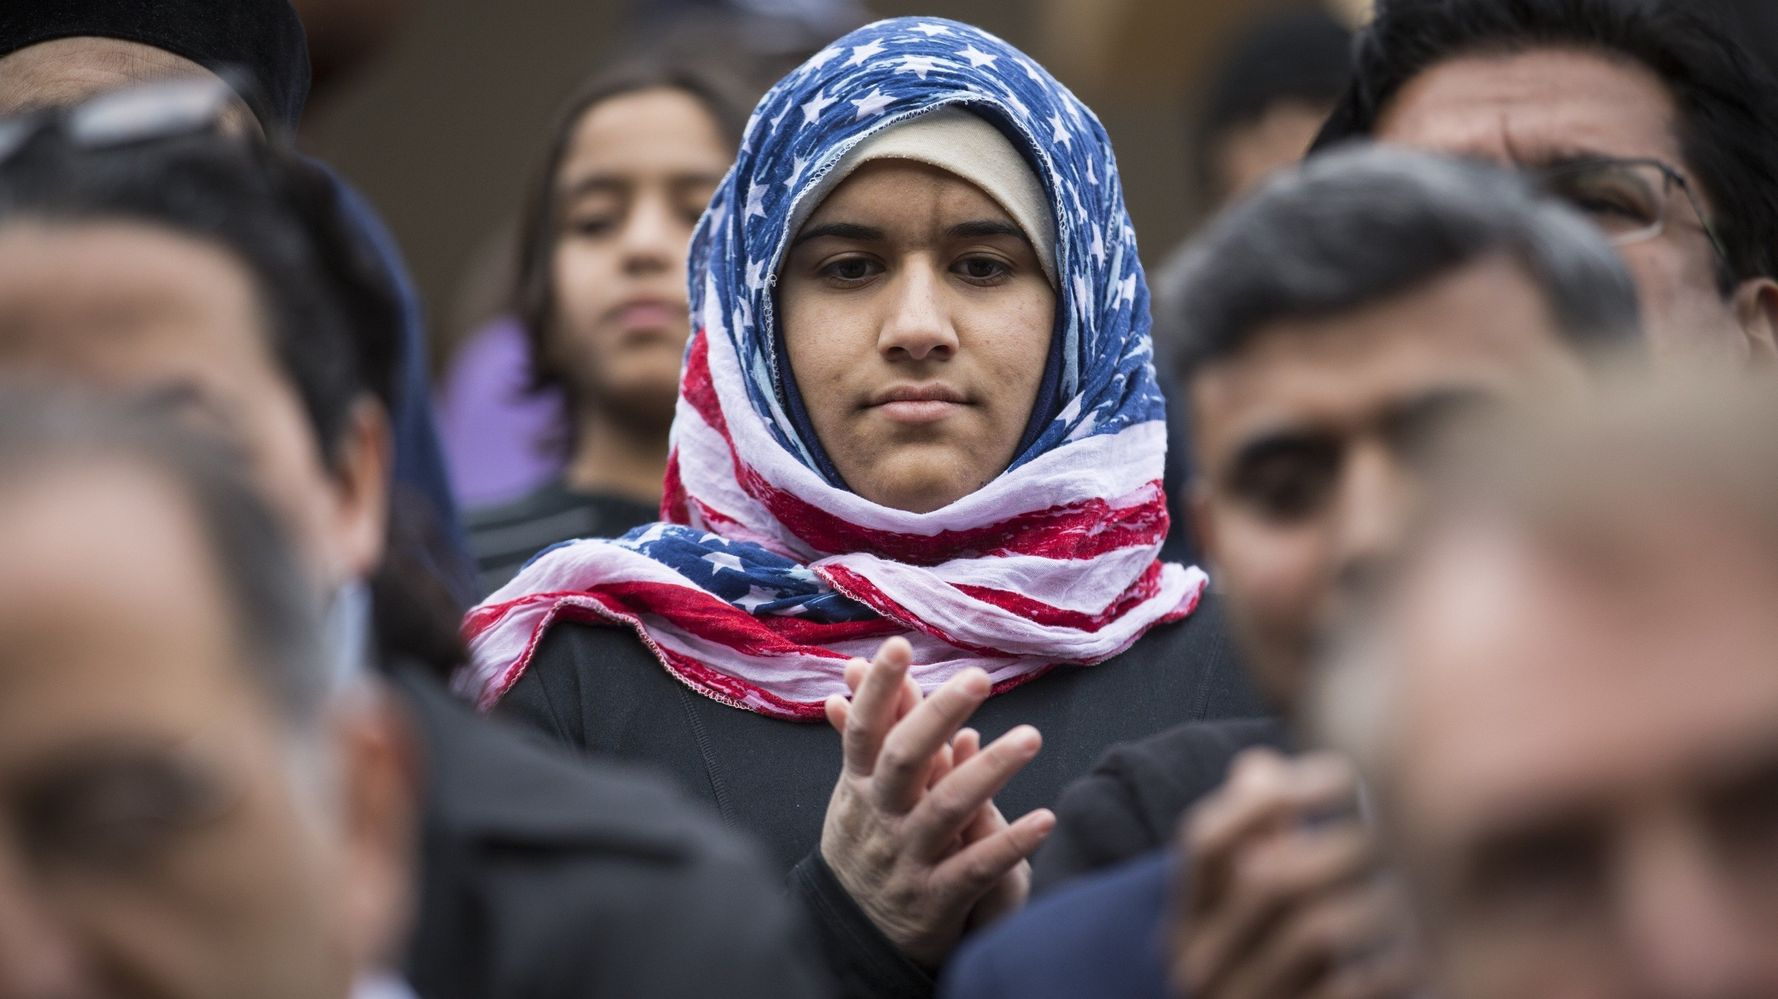 Wanted: One House Republican To Take A Stand Against Islamophobia